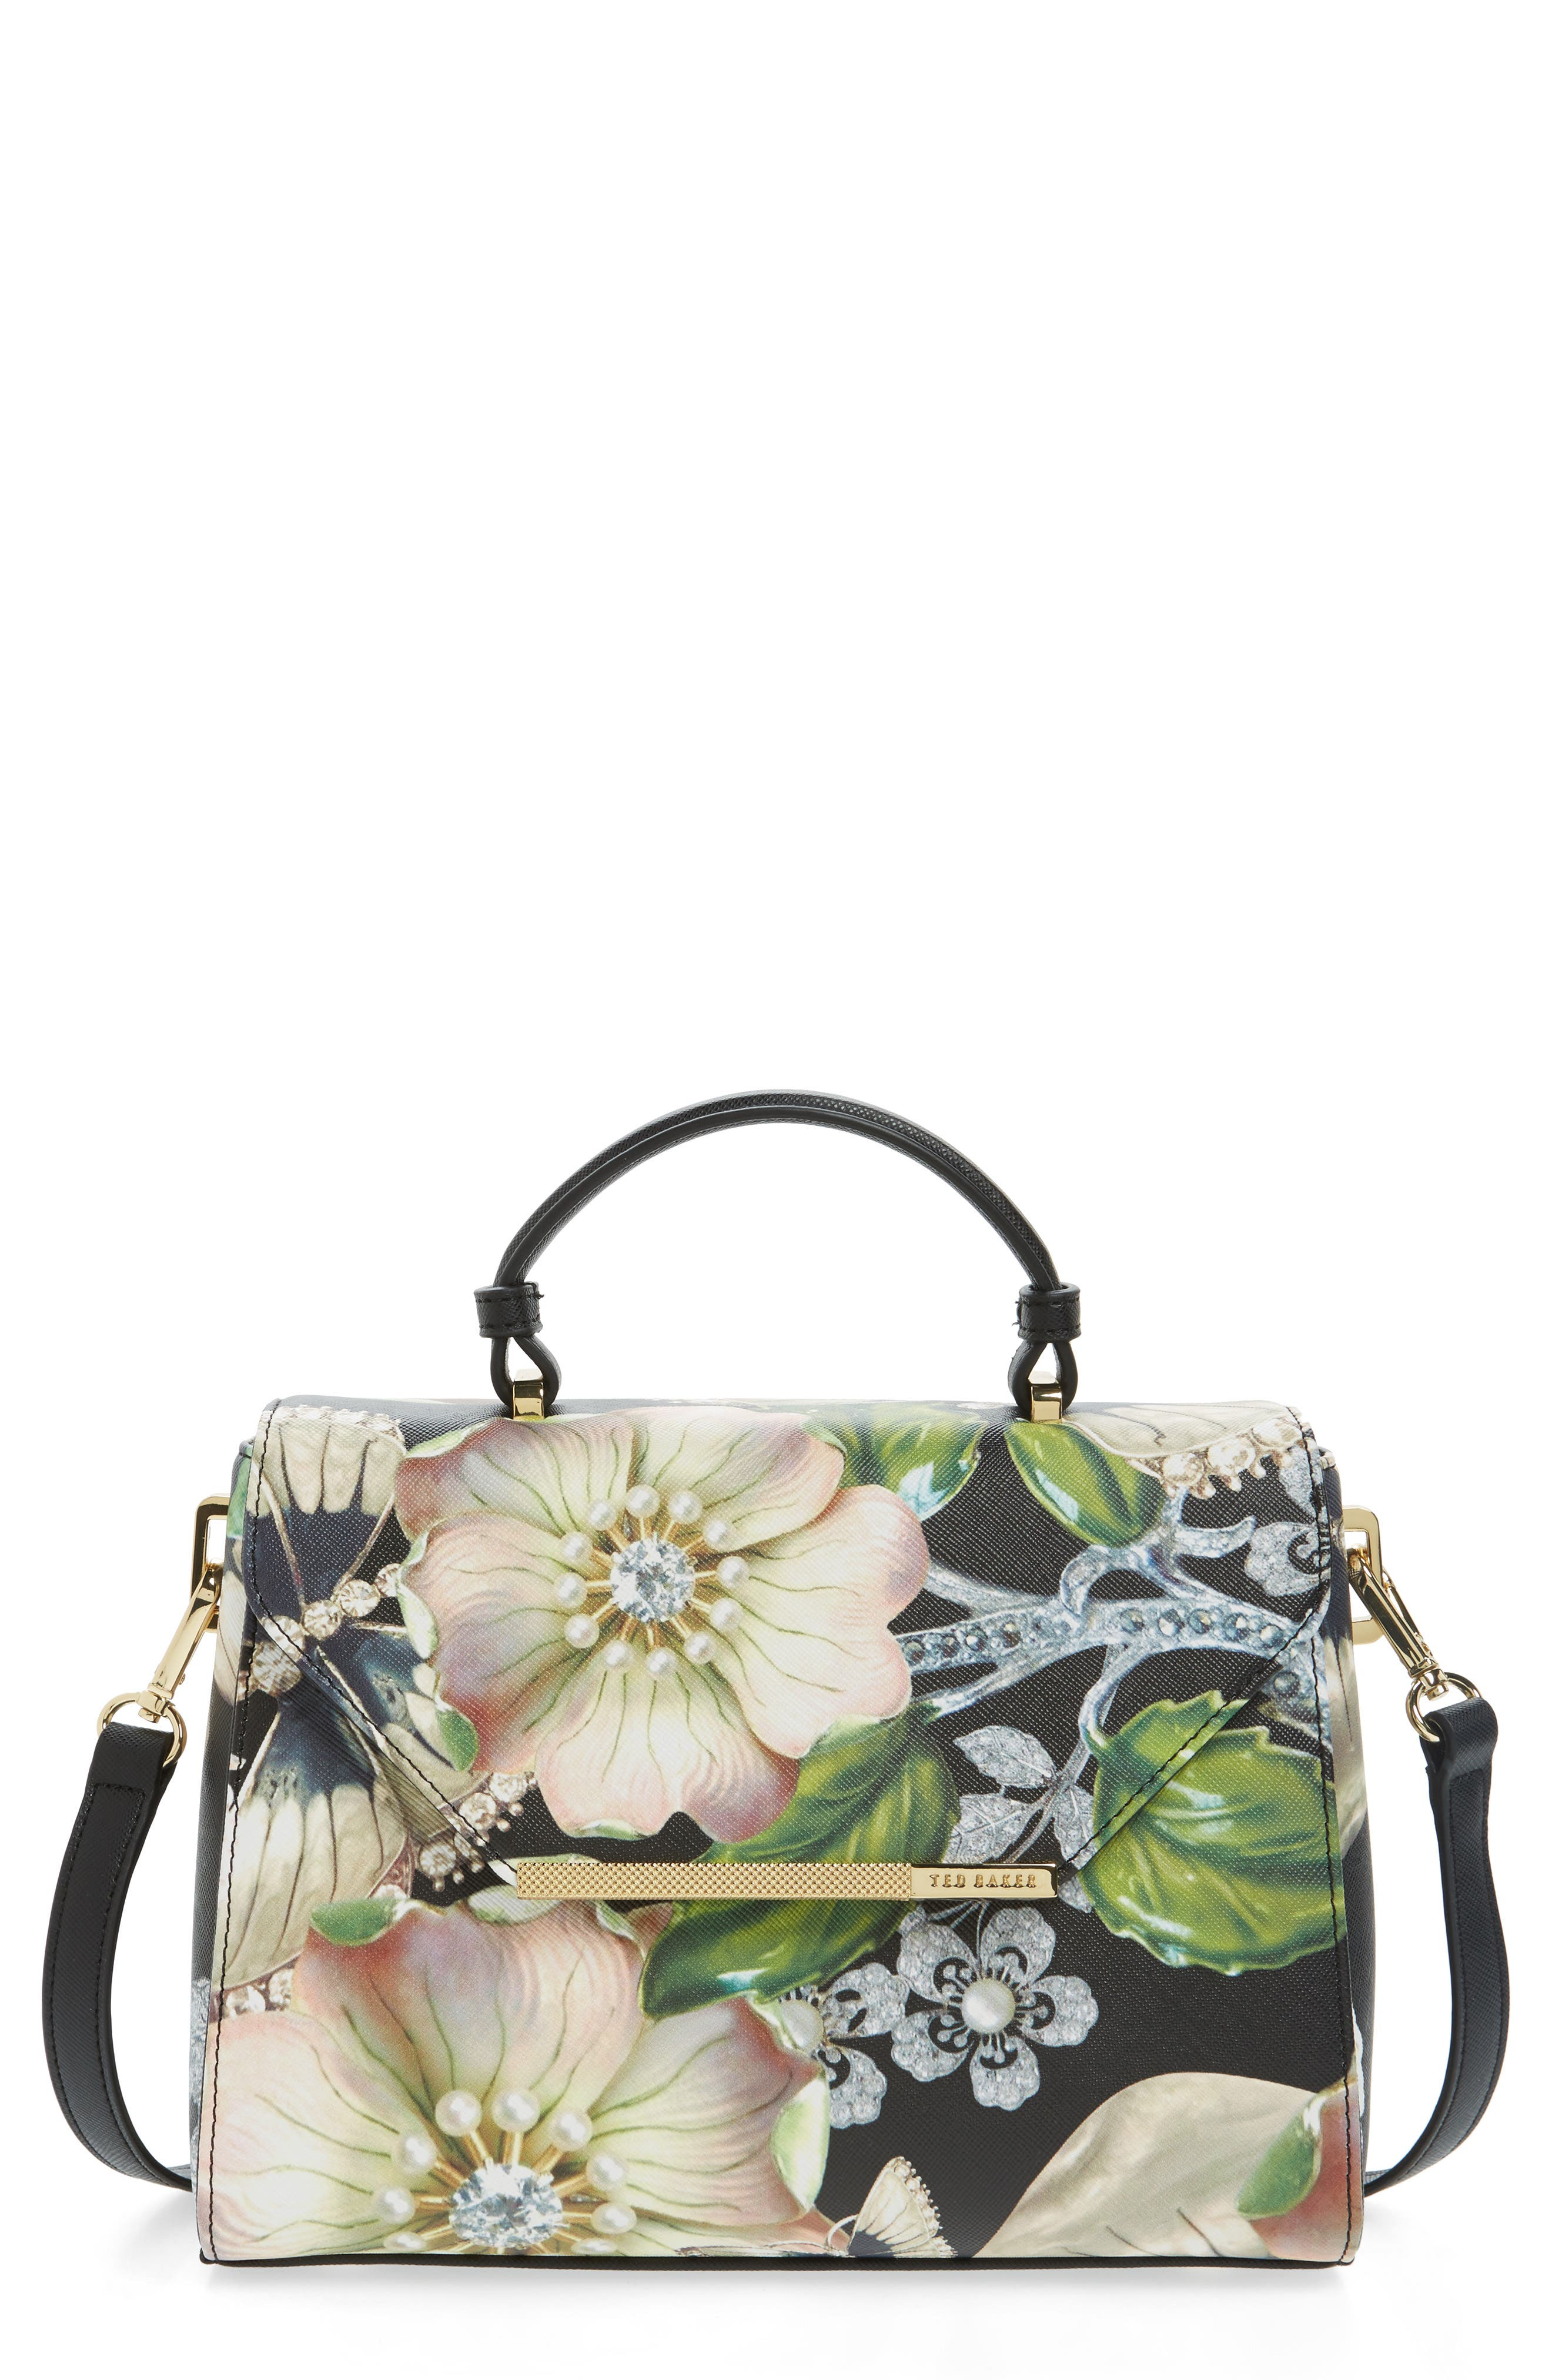 Alternate Image 1 Selected - Ted Baker London Small Gem Gardens Faux Leather Top Handle Satchel